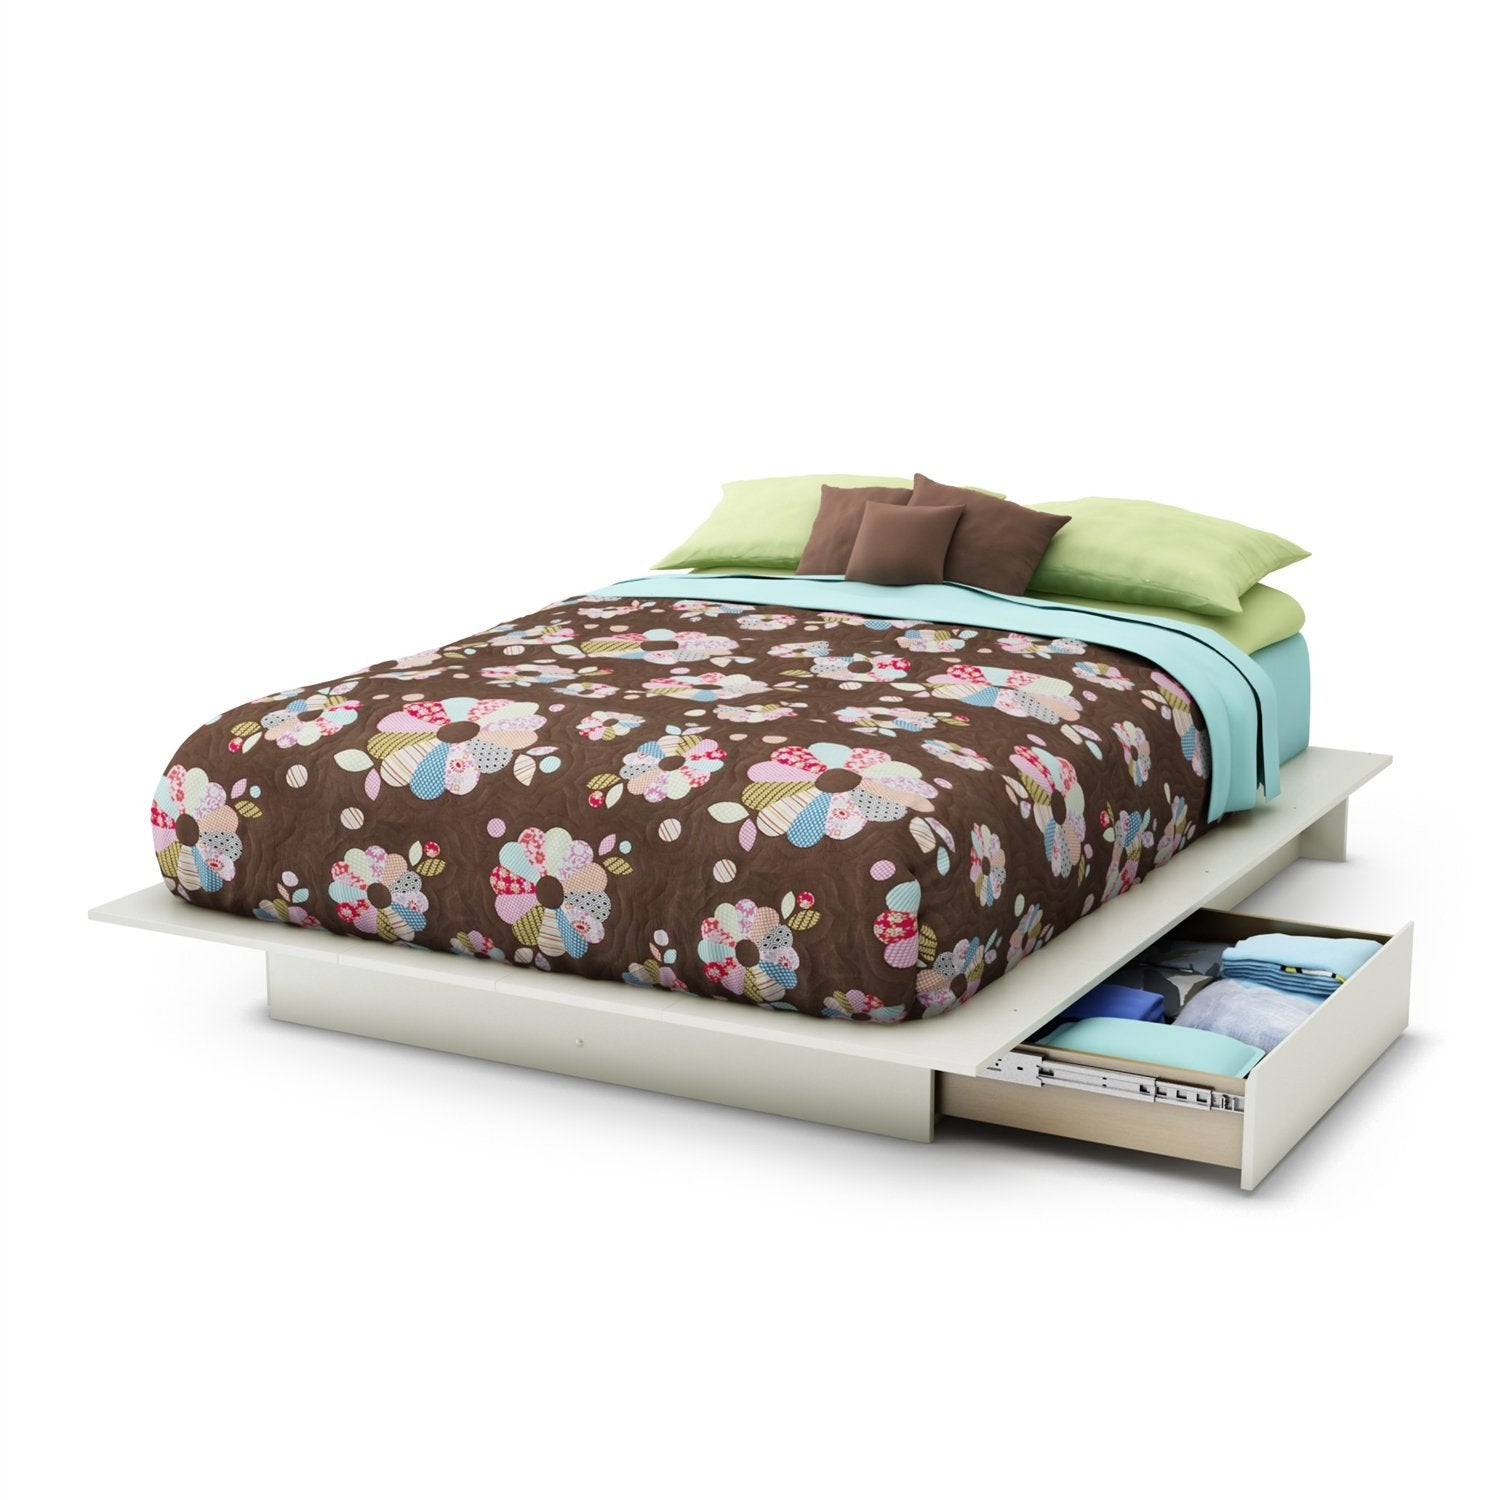 Queen size Modern Platform Bed with 2 Storage Drawers in White Finish